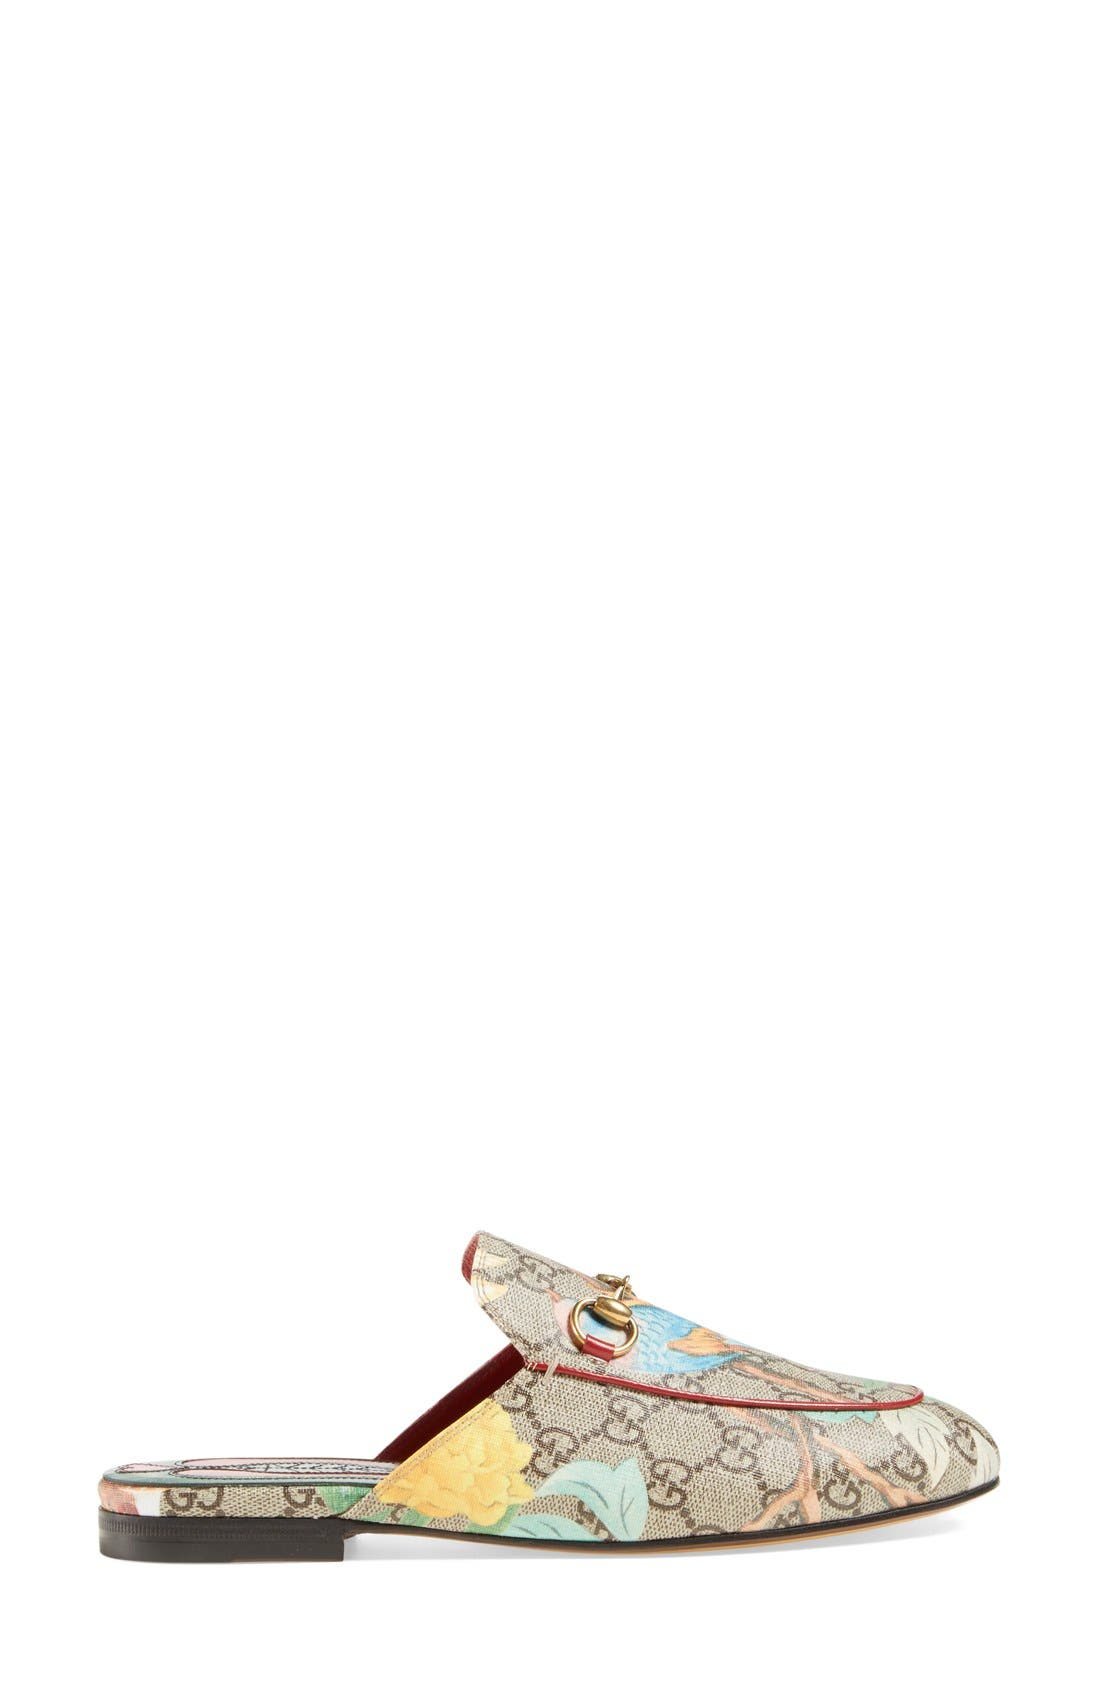 Alternate Image 4  - Gucci 'Princetown' Floral Print Mule Loafer (Women)